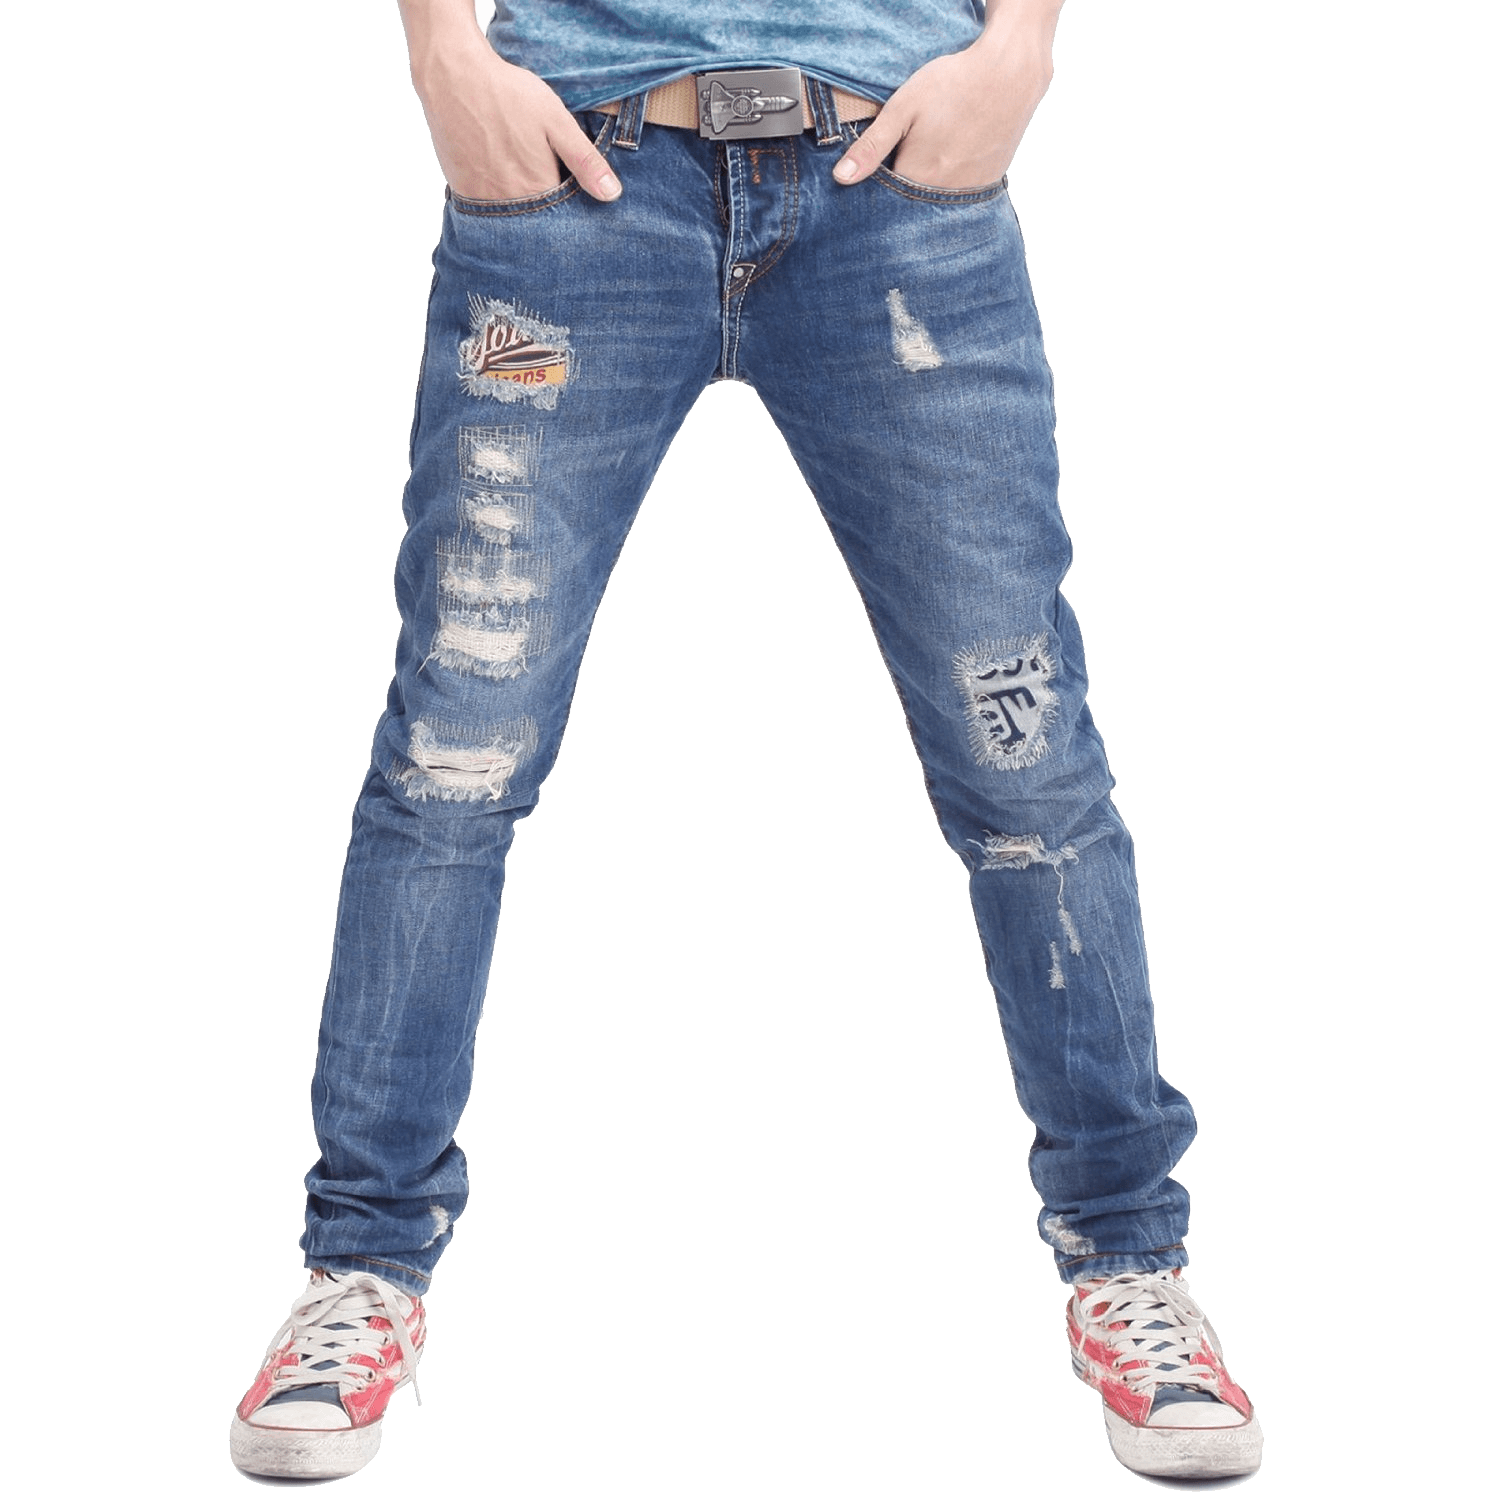 Jeans Png & Free Jeans.png Transparent Images #160.